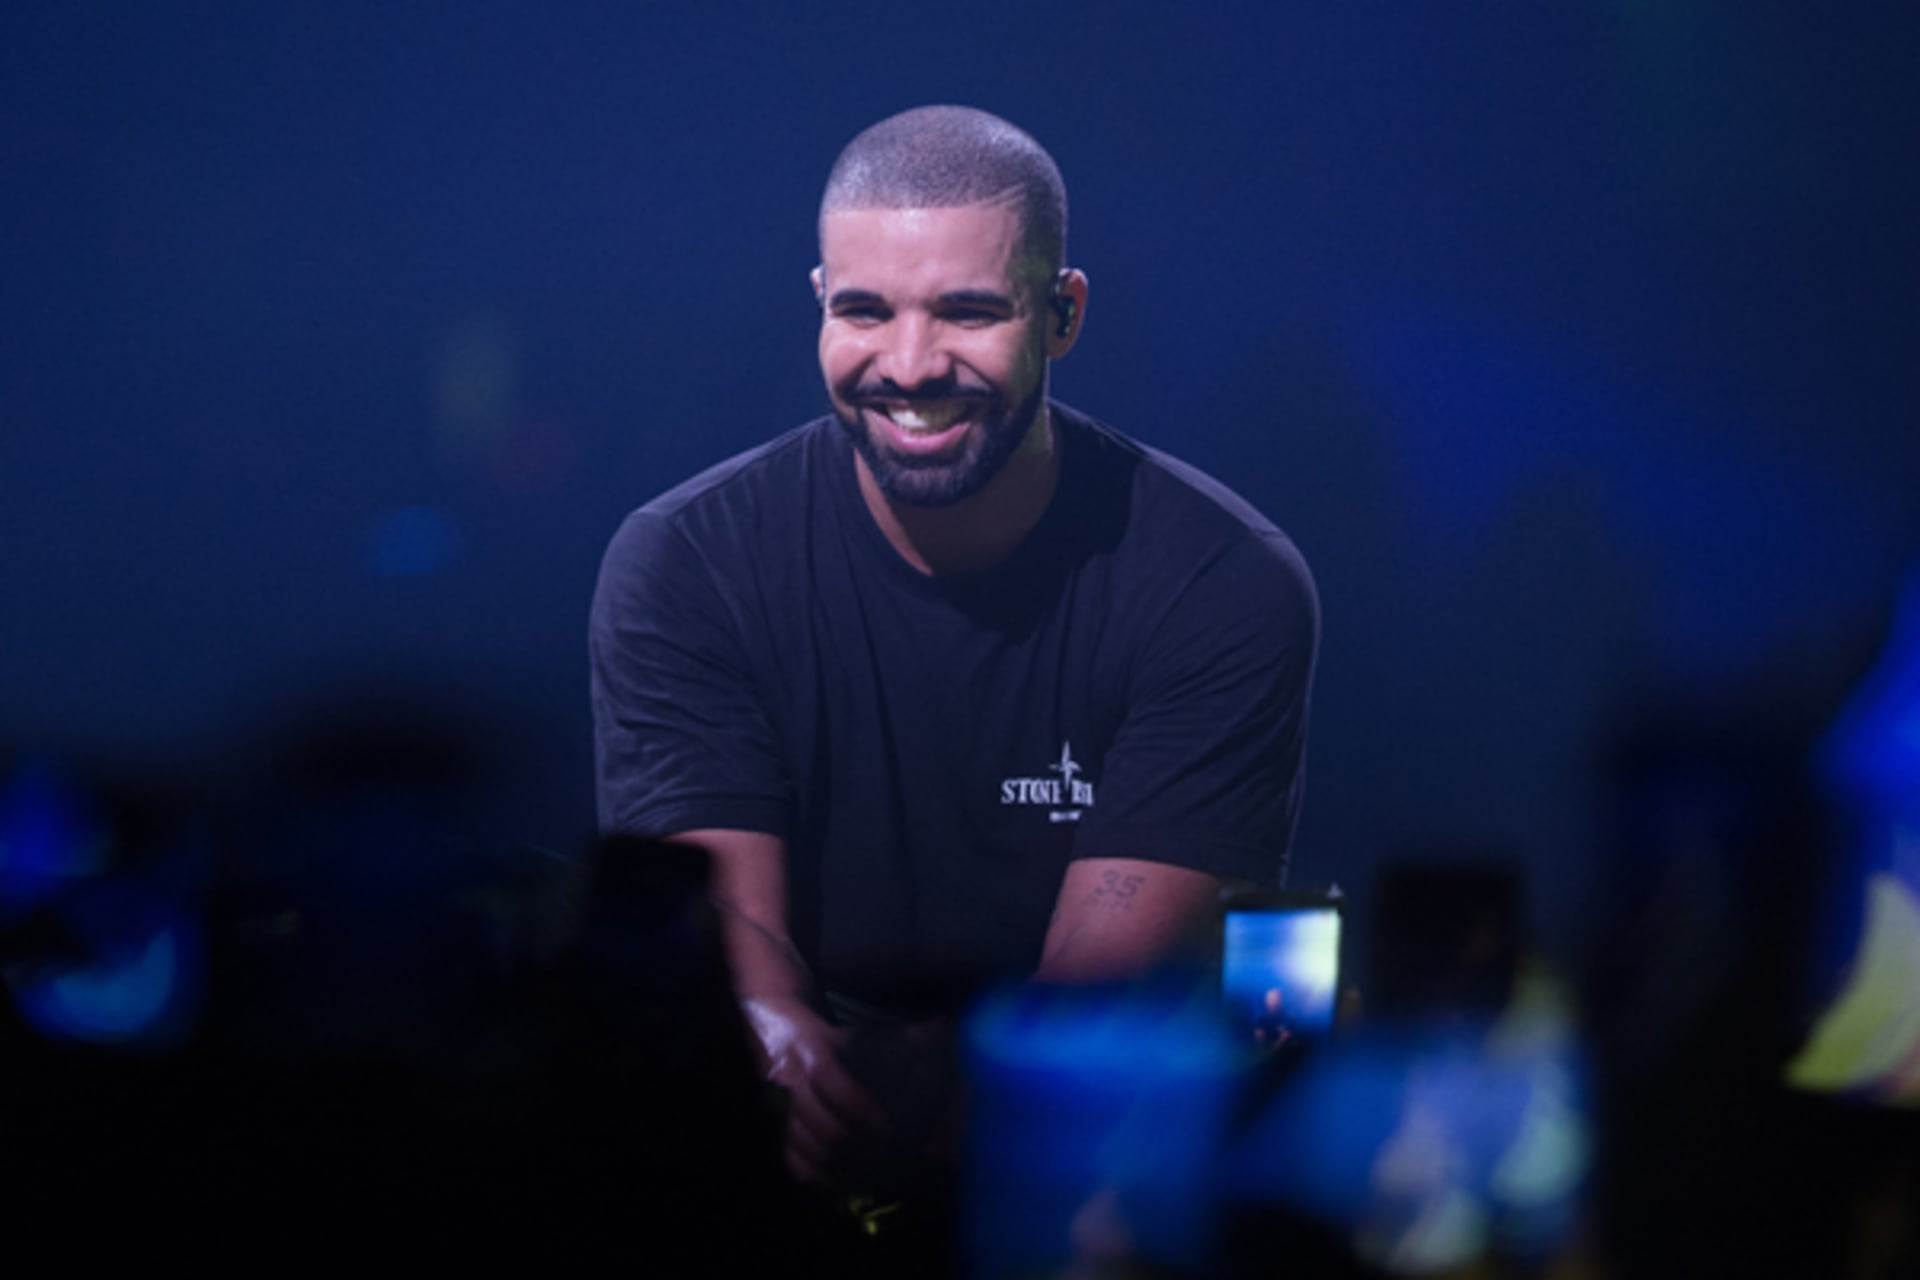 Video has surfaced of Drake kissing and touching an underage fan onstage